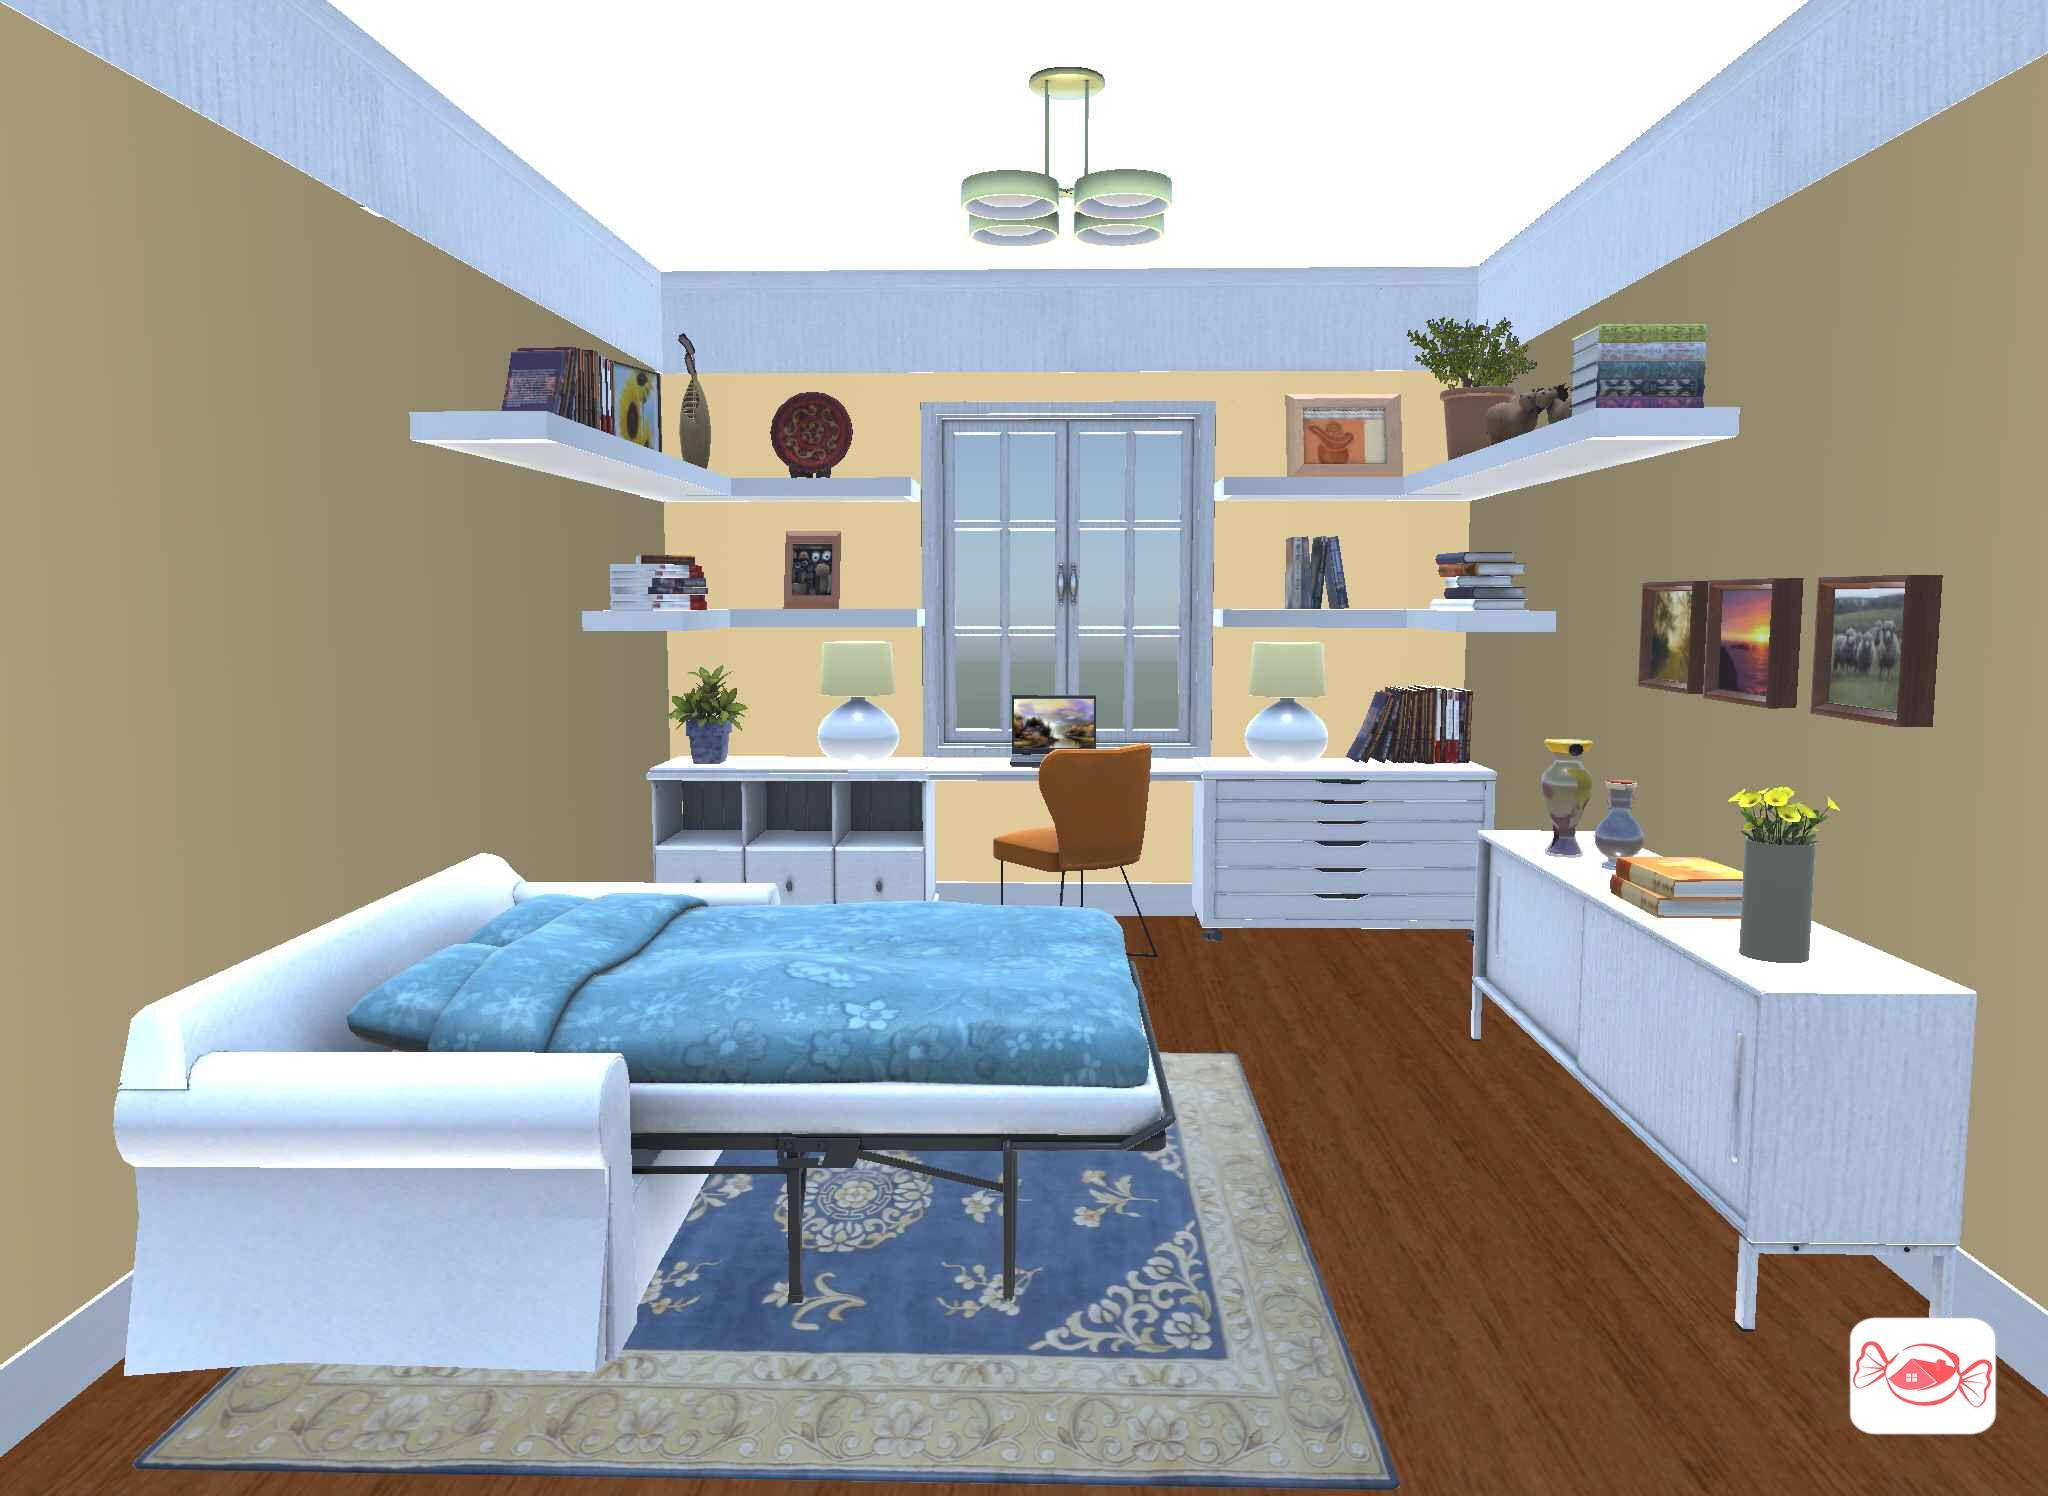 Office Guest Bedroom Created With Home Sweet Home 3d App Design